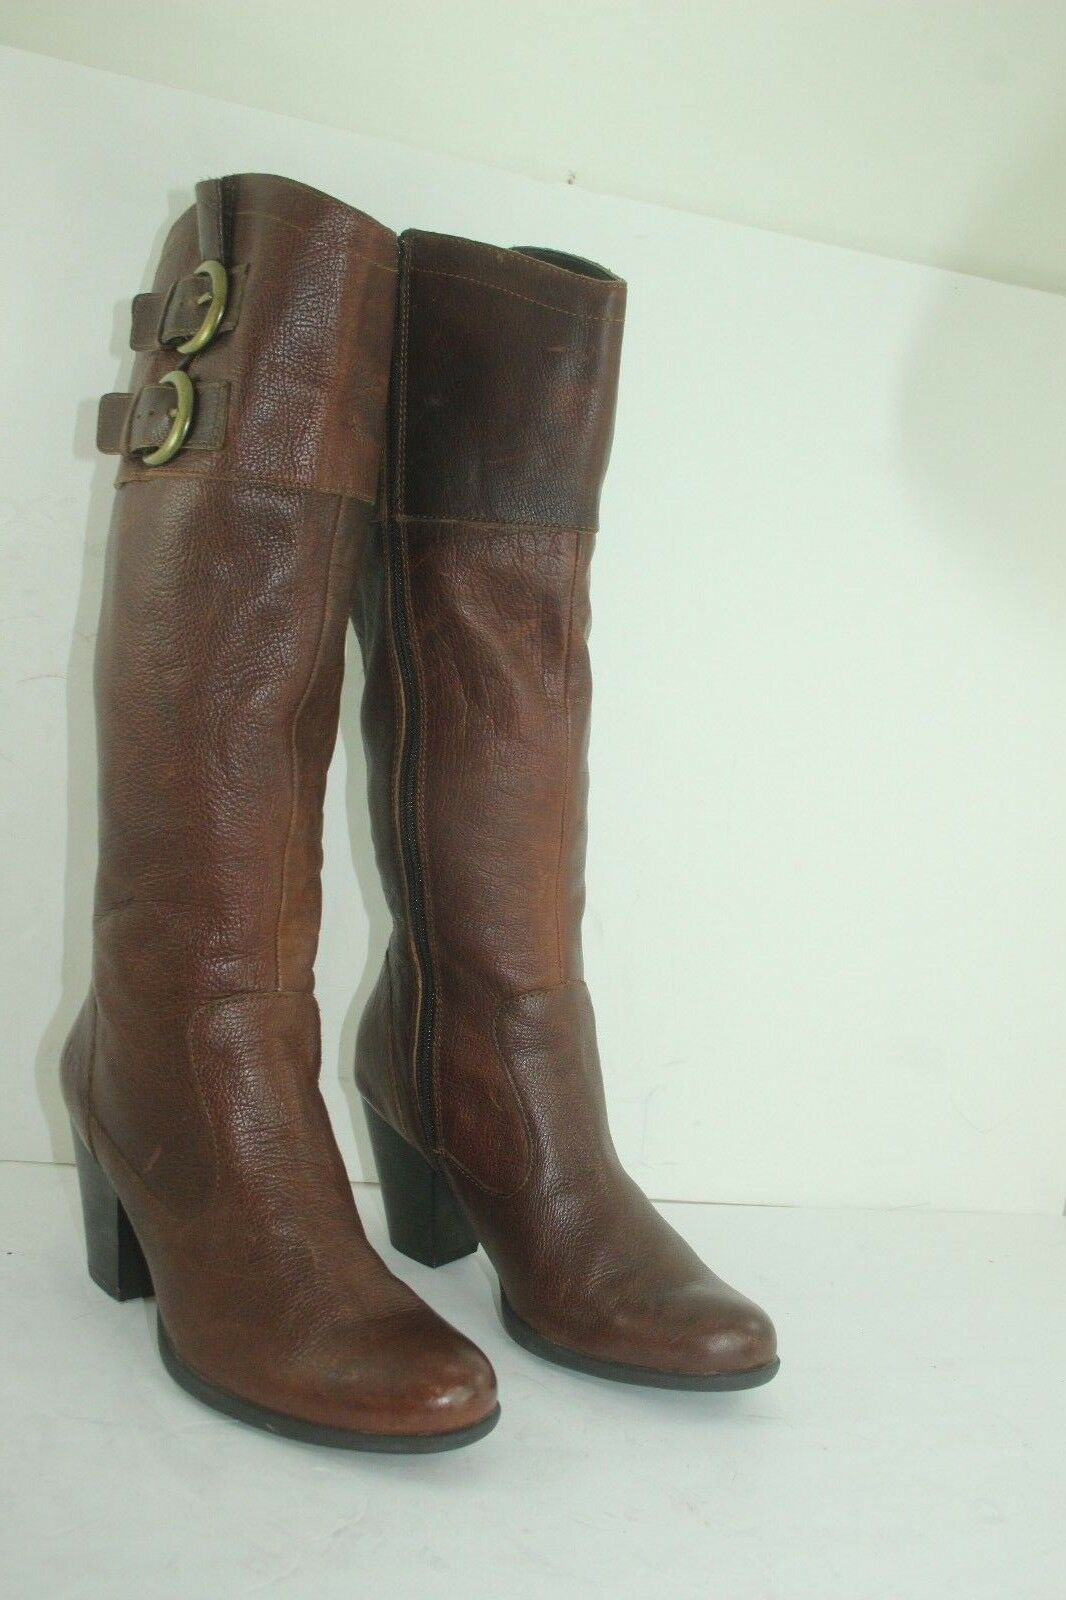 BORN B.O.C. BOOTS LEATHER BROWNS SIZE 7 IN GREAT CONDITION